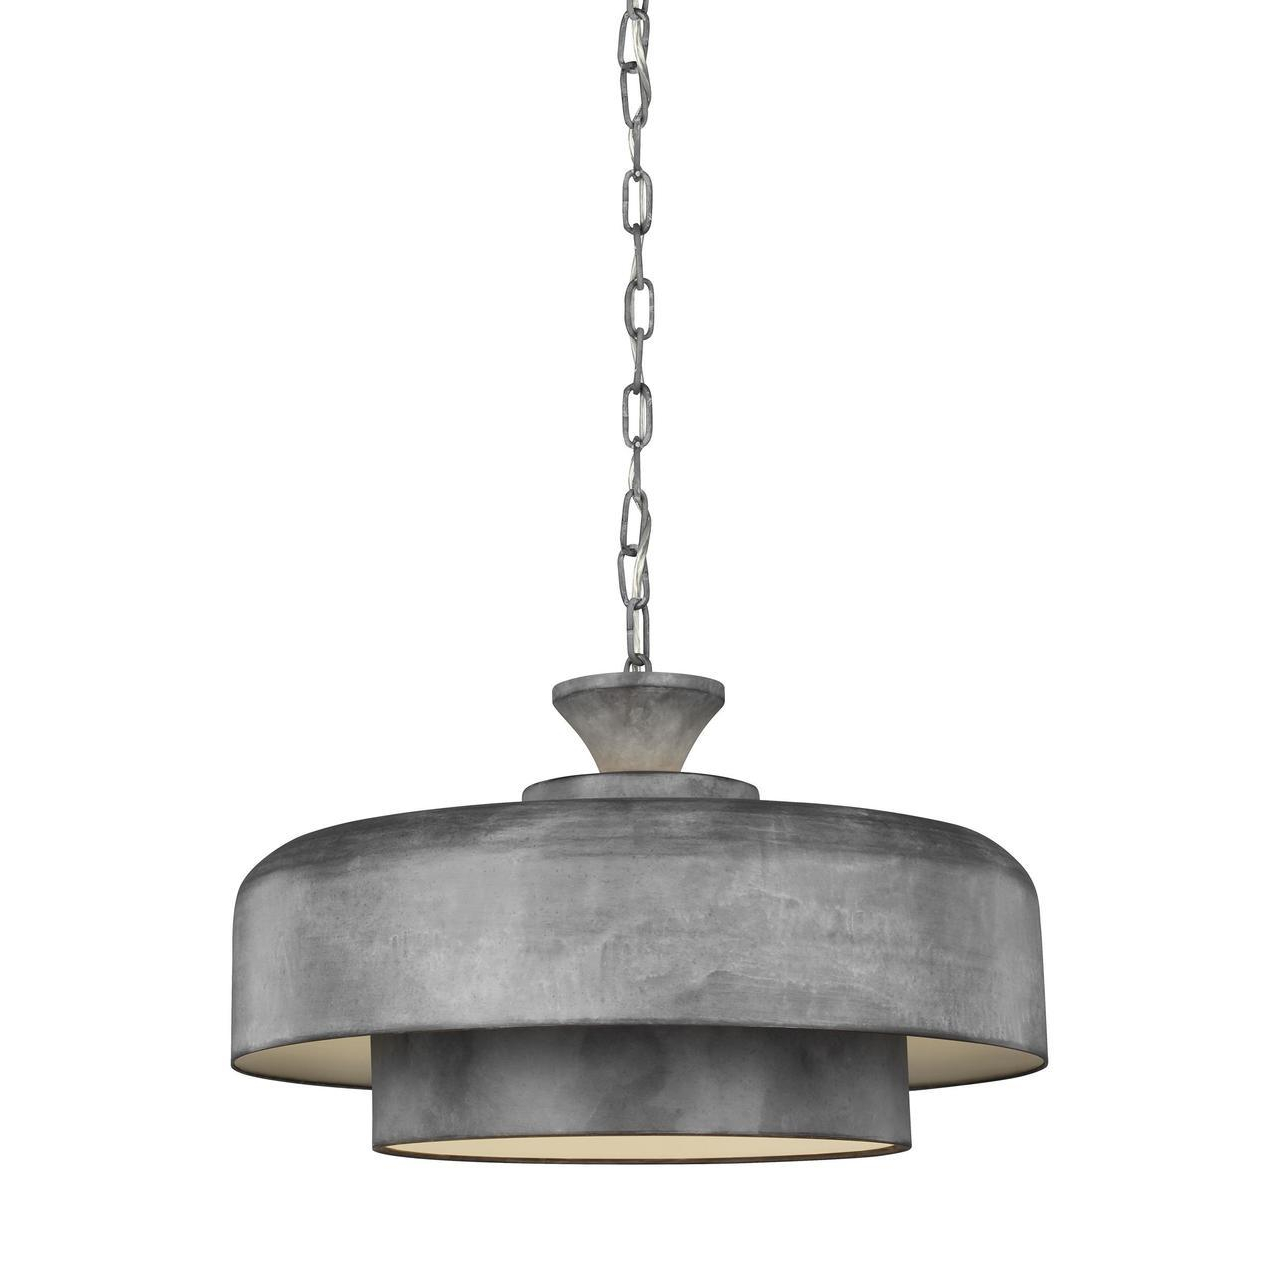 Galvanised Steel Finish pendant with Inner Shade